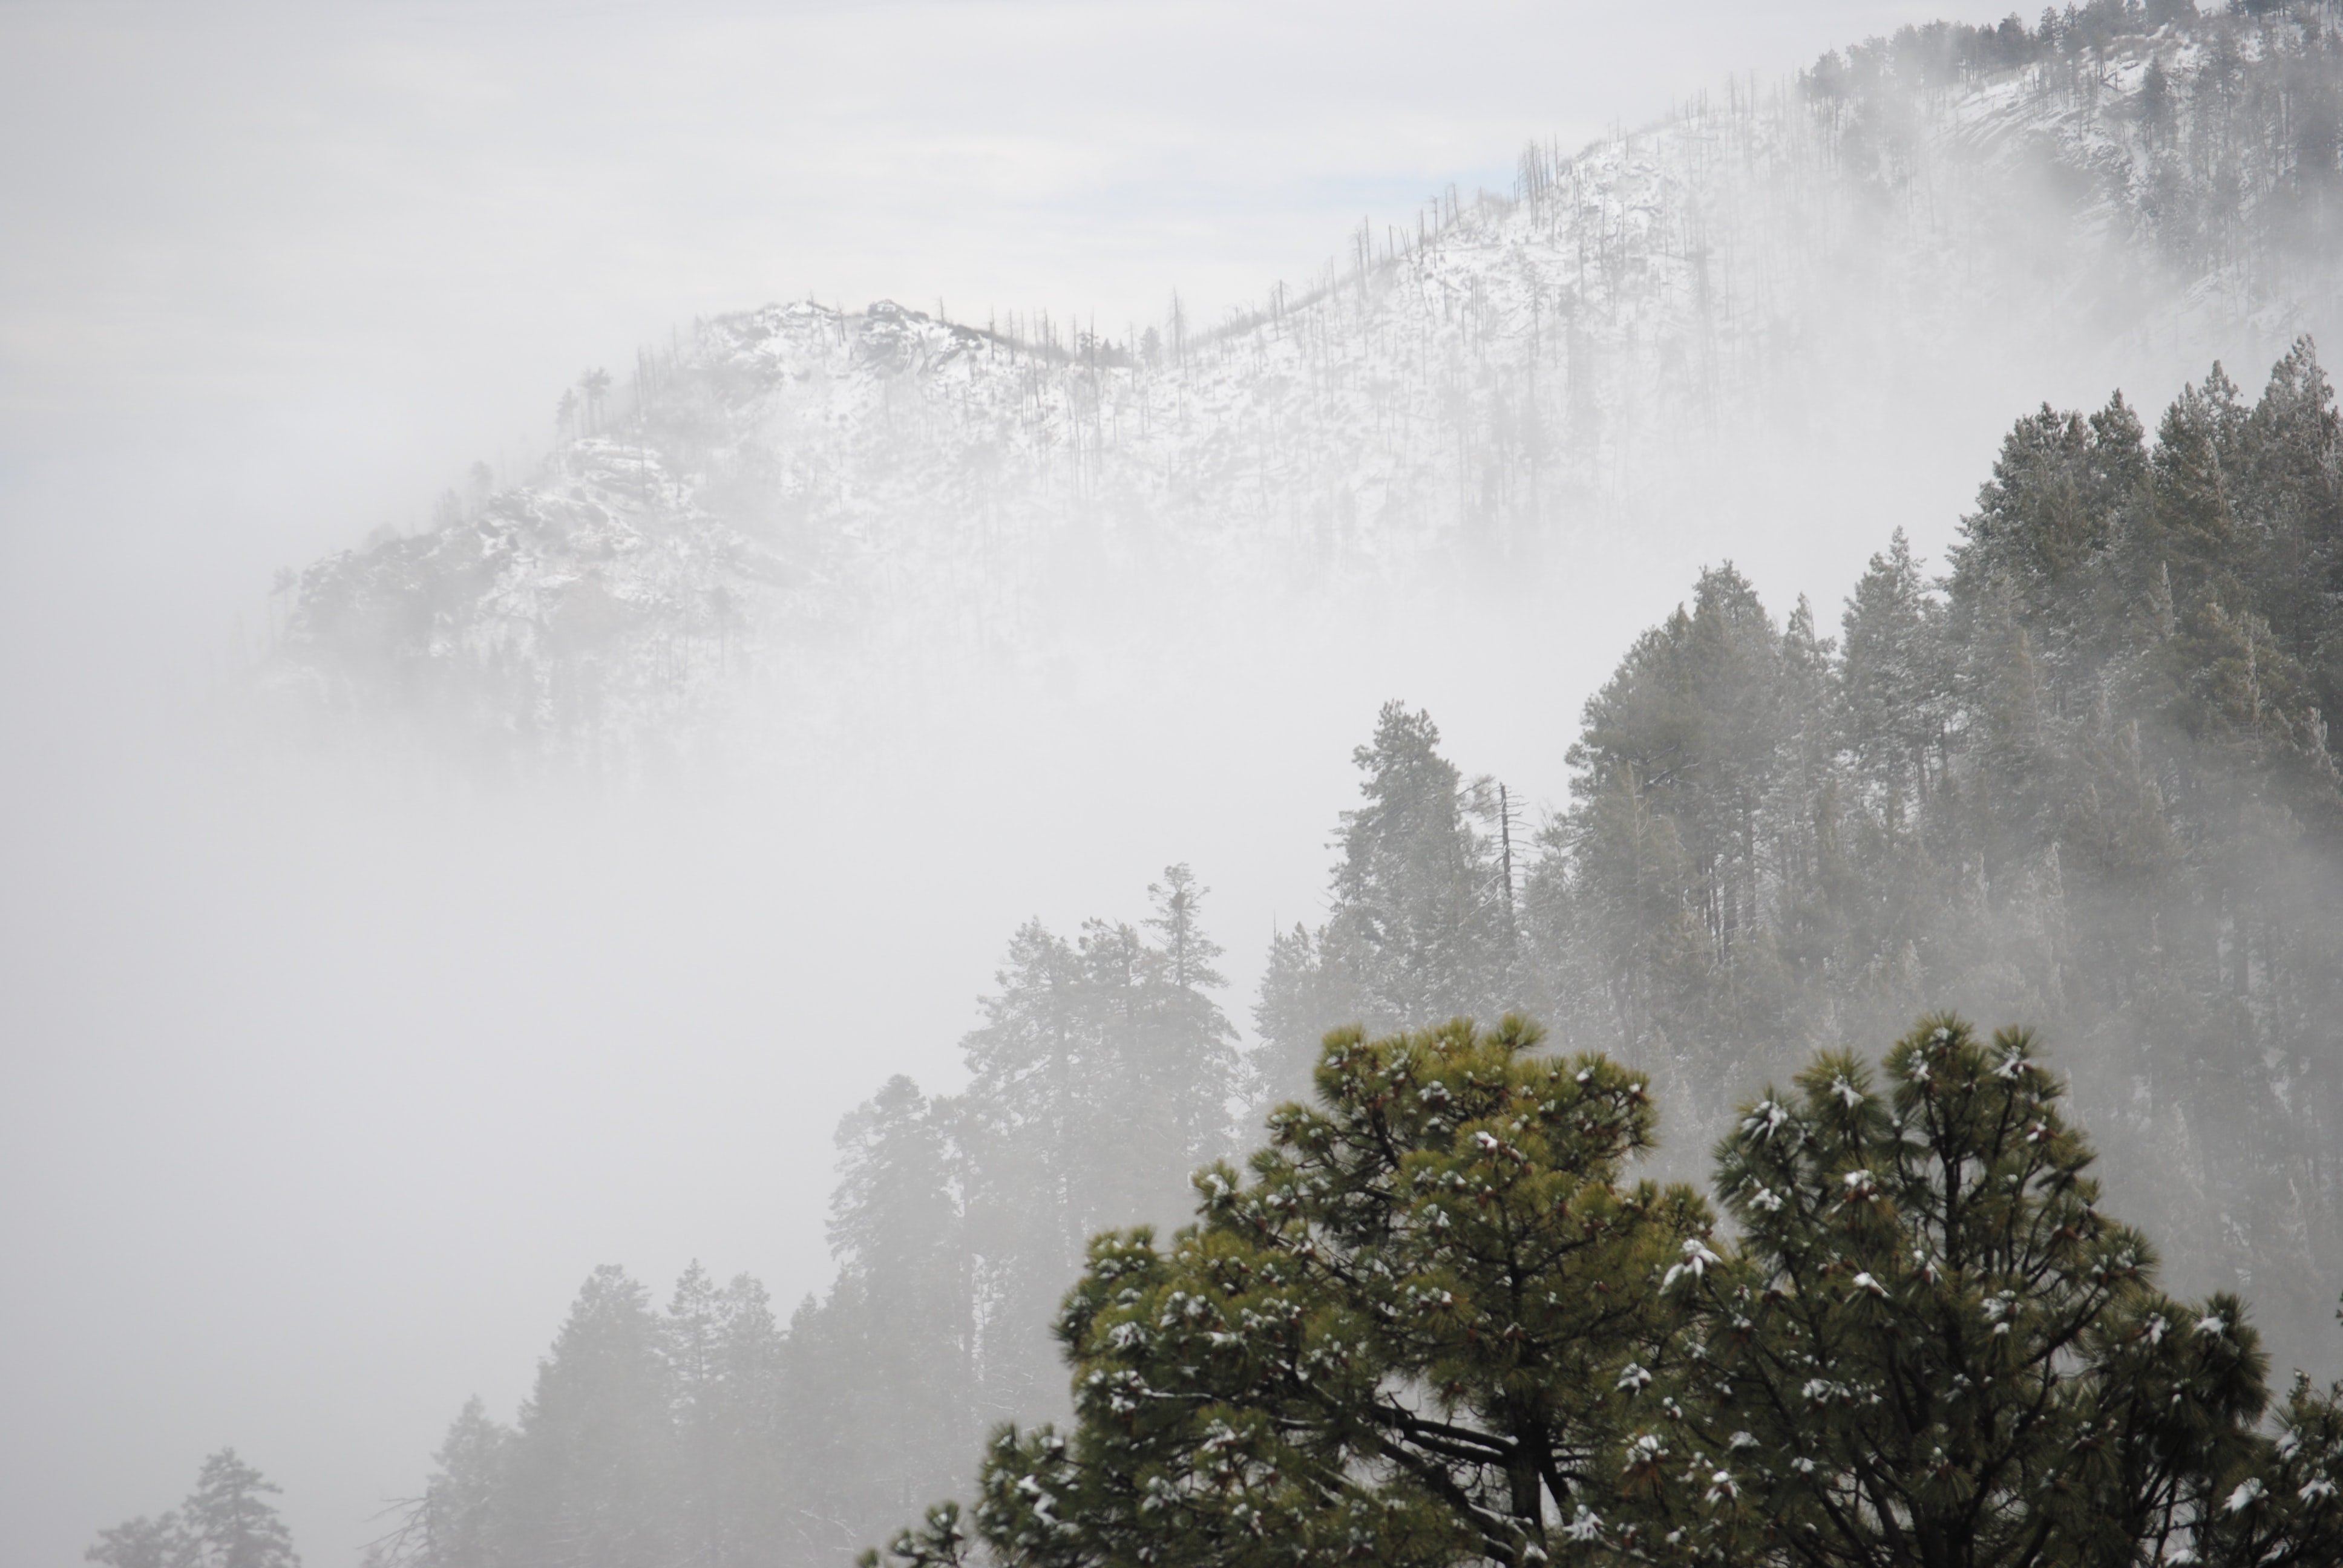 trees sitting on mountain covered in fog